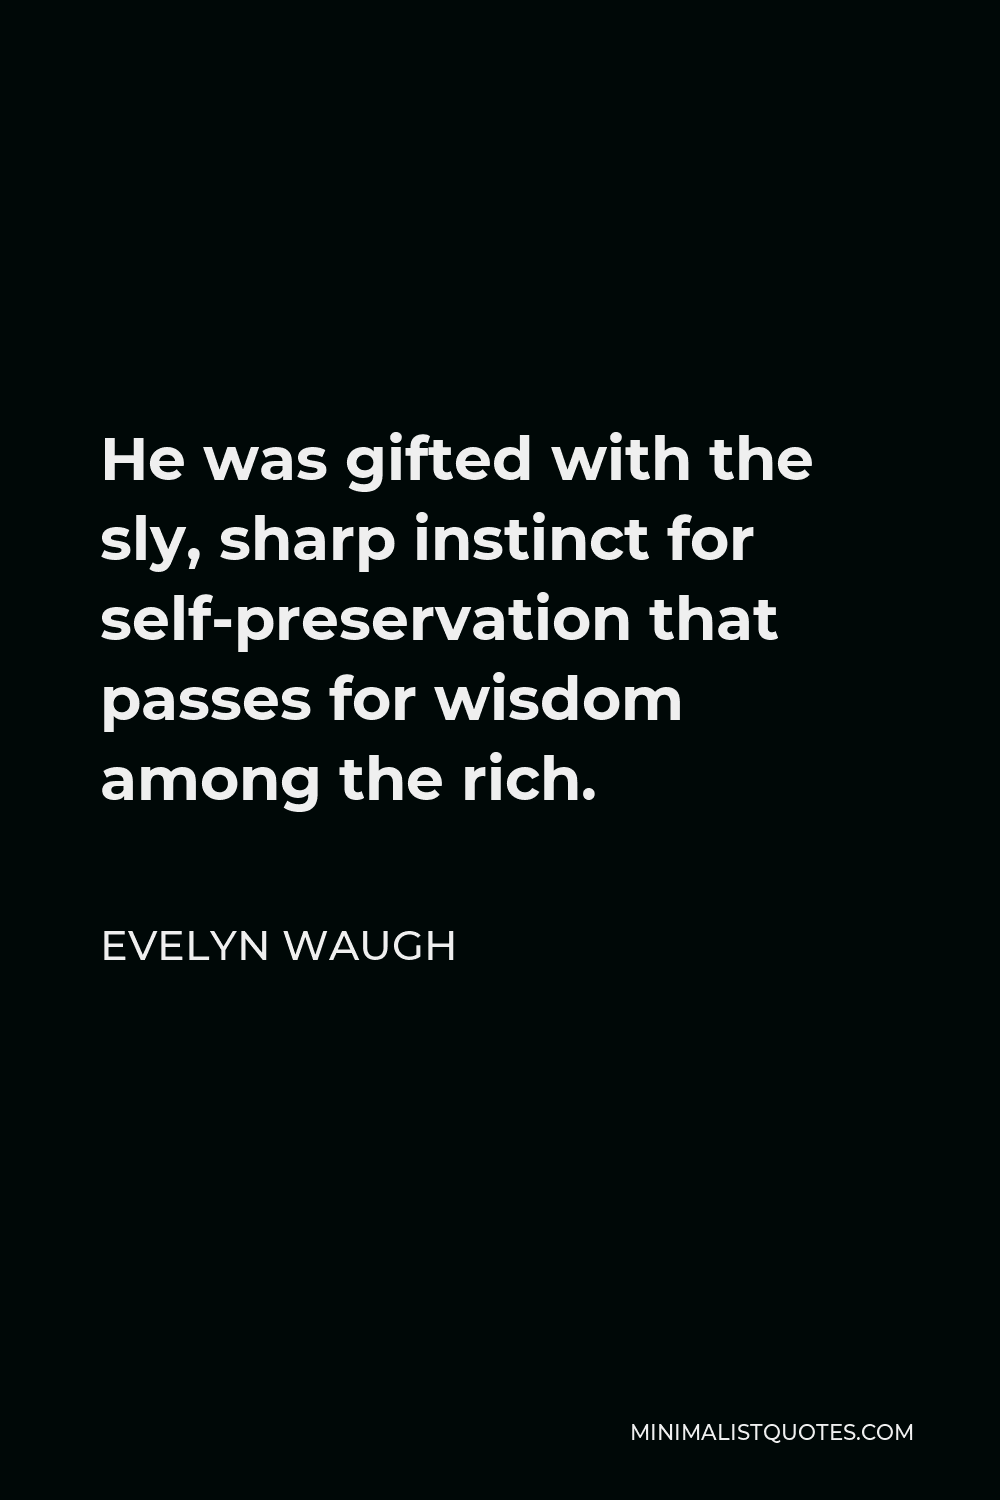 Evelyn Waugh Quote - He was gifted with the sly, sharp instinct for self-preservation that passes for wisdom among the rich.